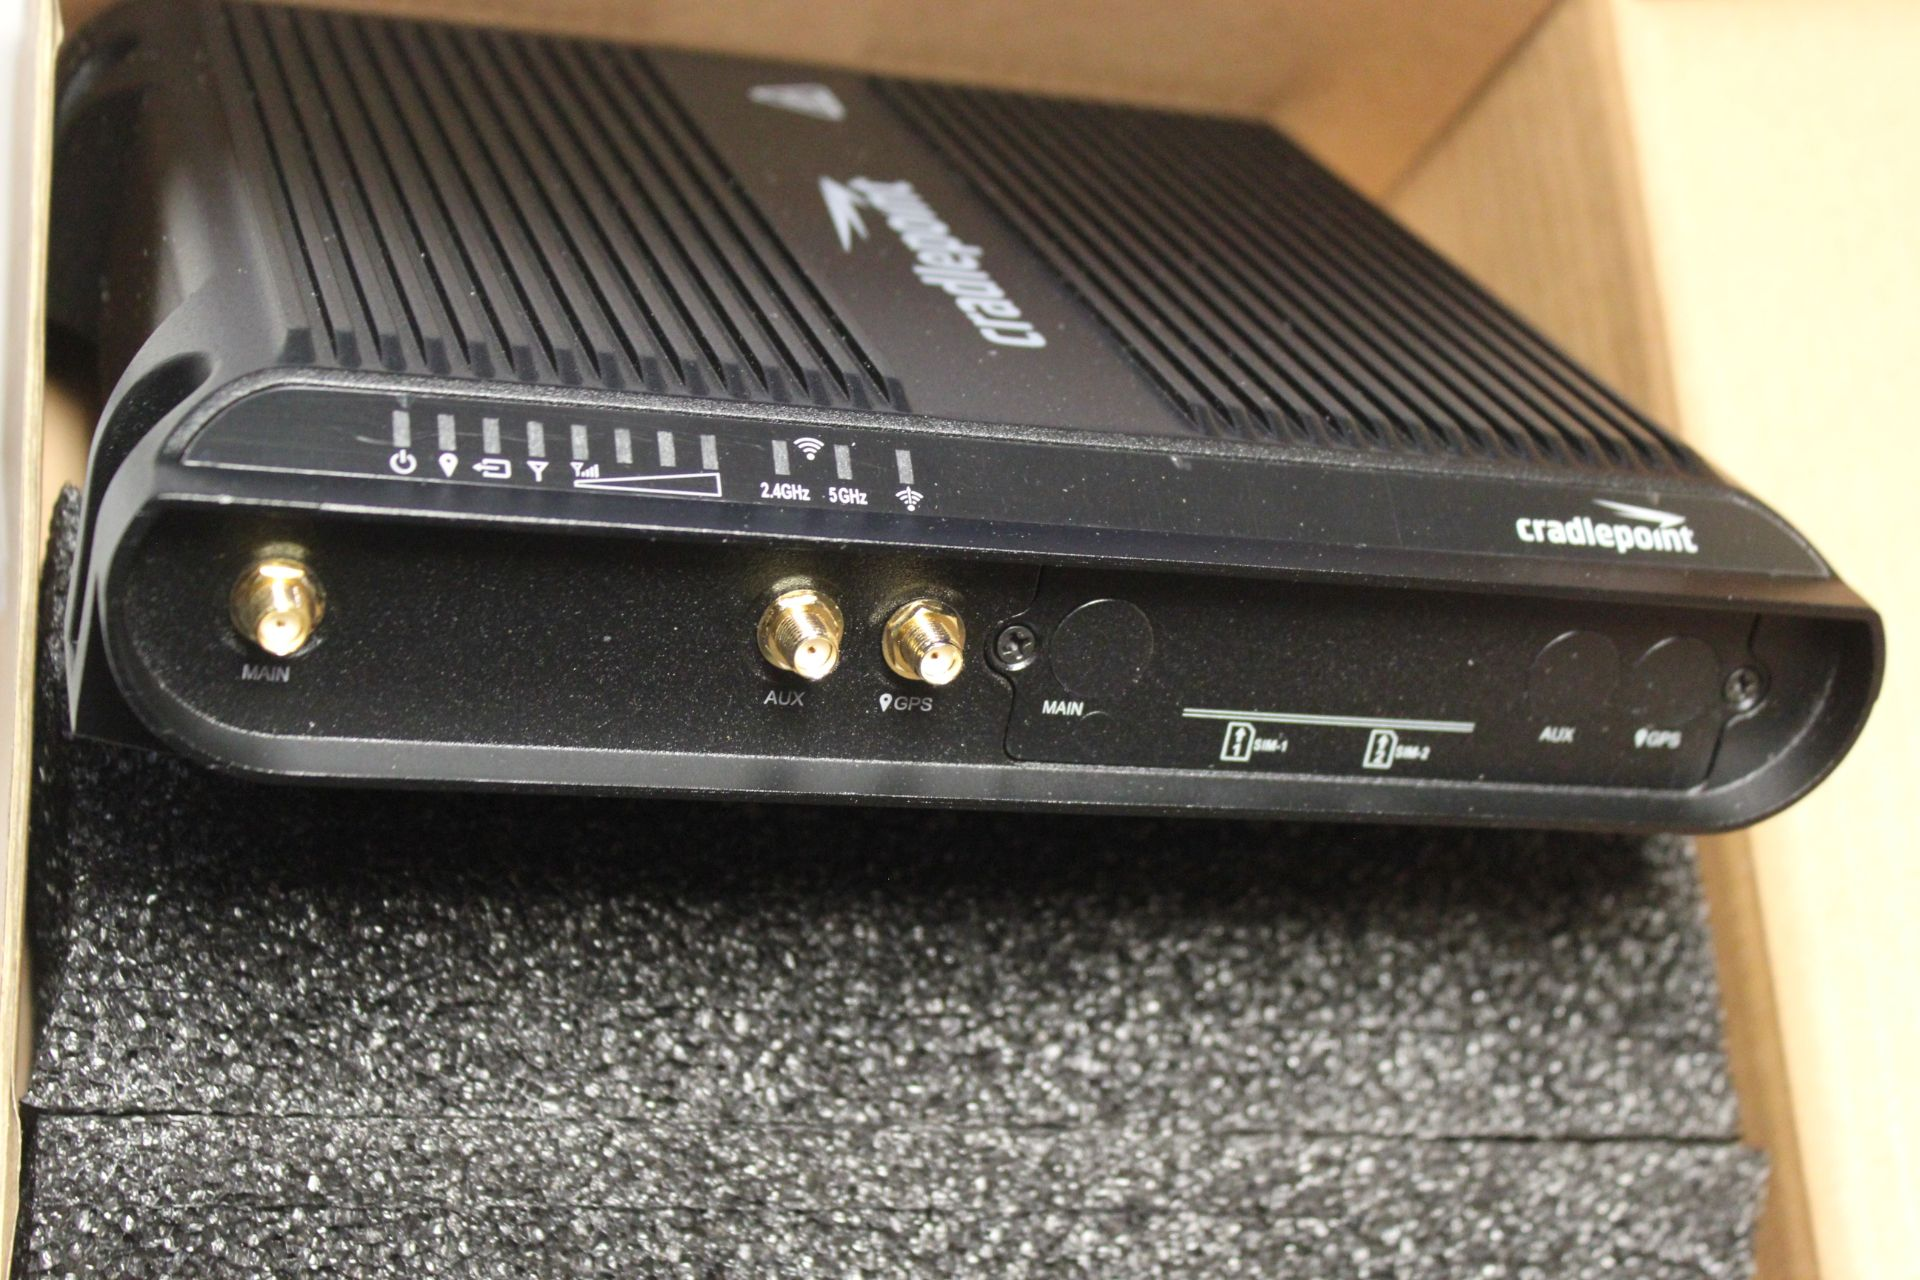 NEW CRADLEPOINT COR SERIES ROUTER - Image 5 of 8